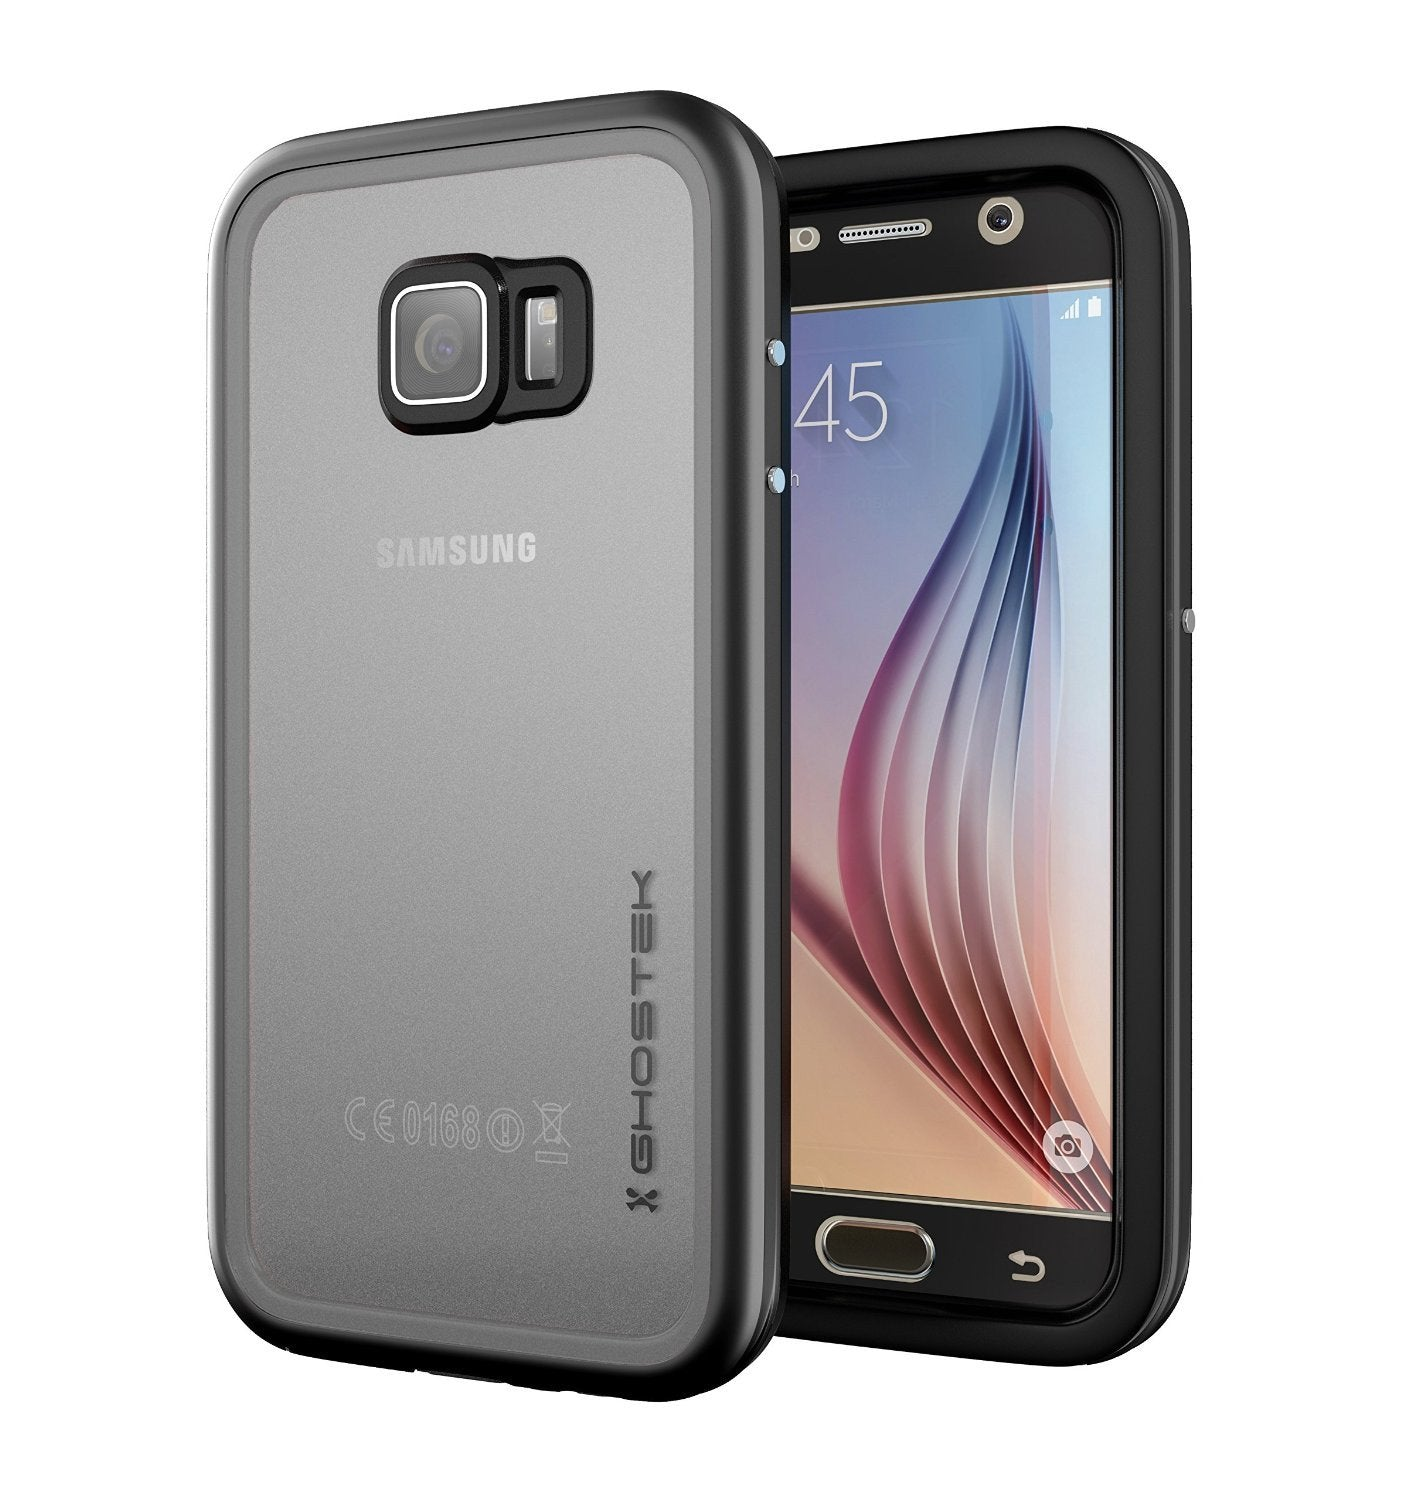 Galaxy S6 Waterproof Case, Ghostek Atomic 2.0 Black  Water/Shock/Dirt/Snow Proof | Lifetime Warranty